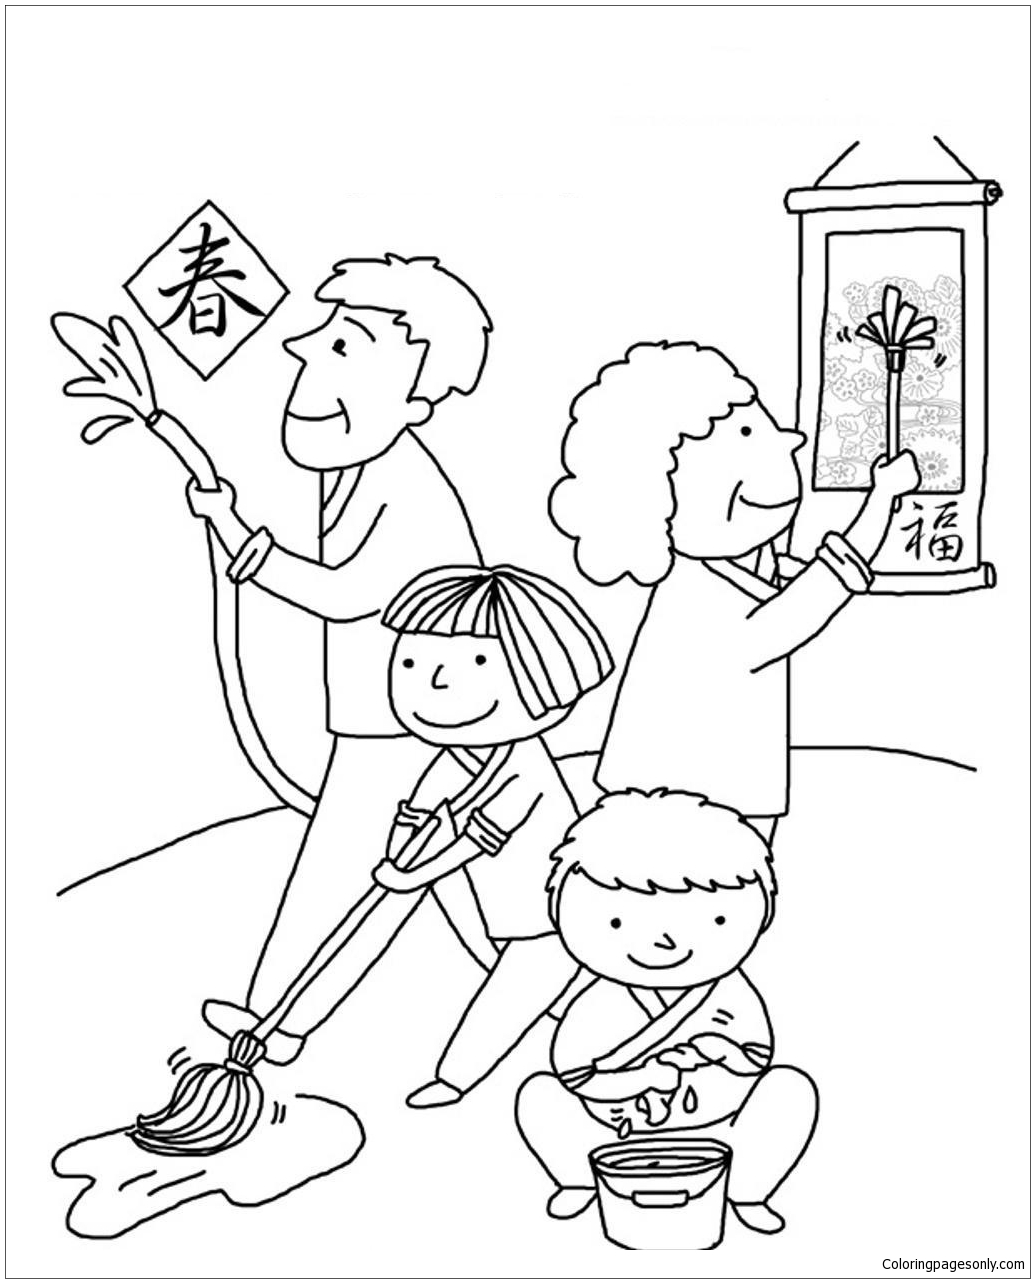 Chinese New Year S Cleaning The House Coloring Pages Holidays Coloring Pages Free Printable Coloring Pages Online